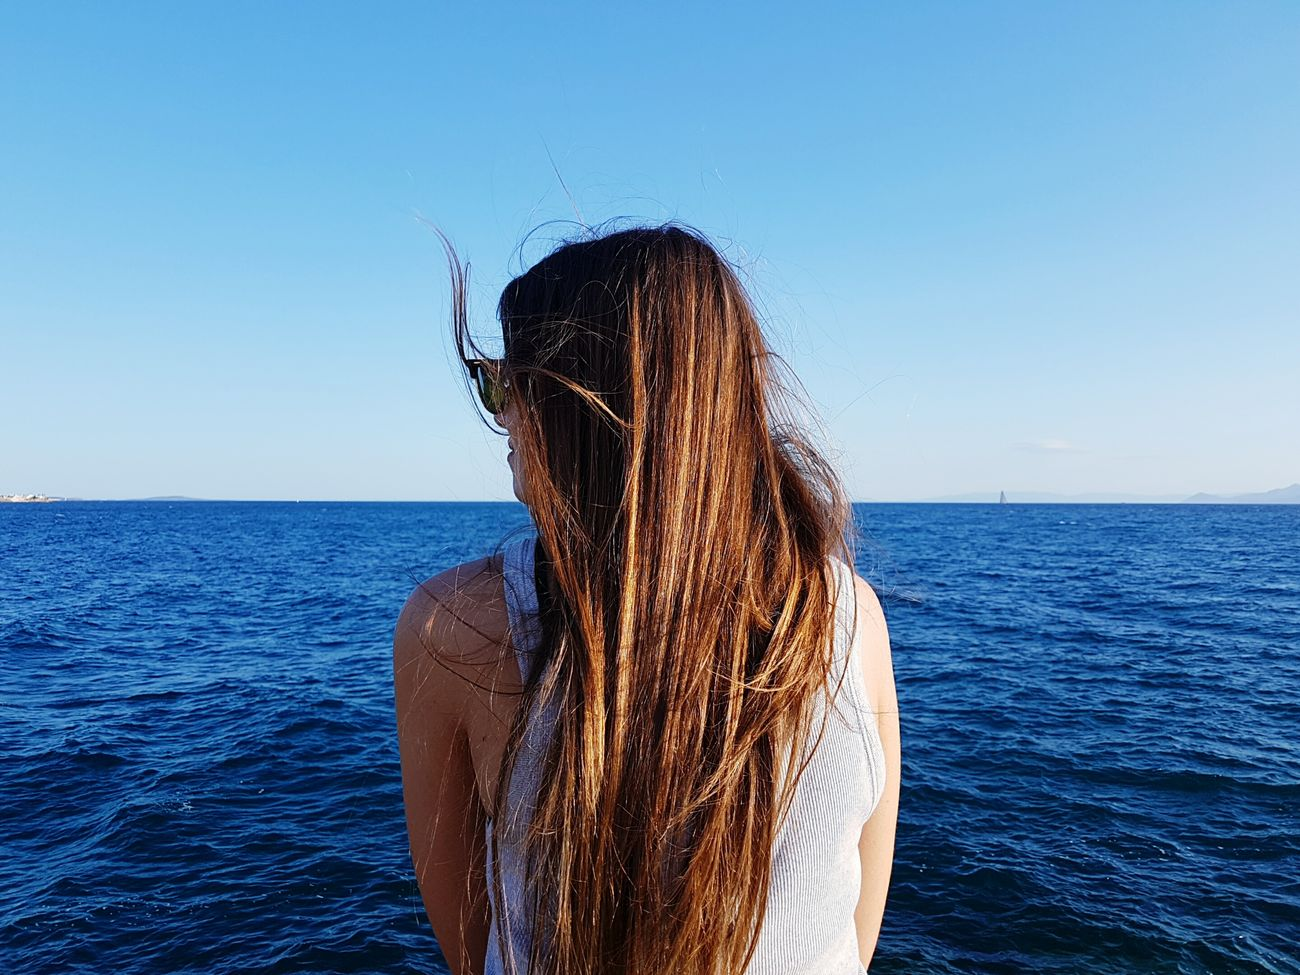 Enjoying The Sun Fresh Air Relaxing Summer Vibes Clear Sky Greece Skylover Athens Gazing Chillin' Sea Seaside Girl Lonely First Eyeem Photo